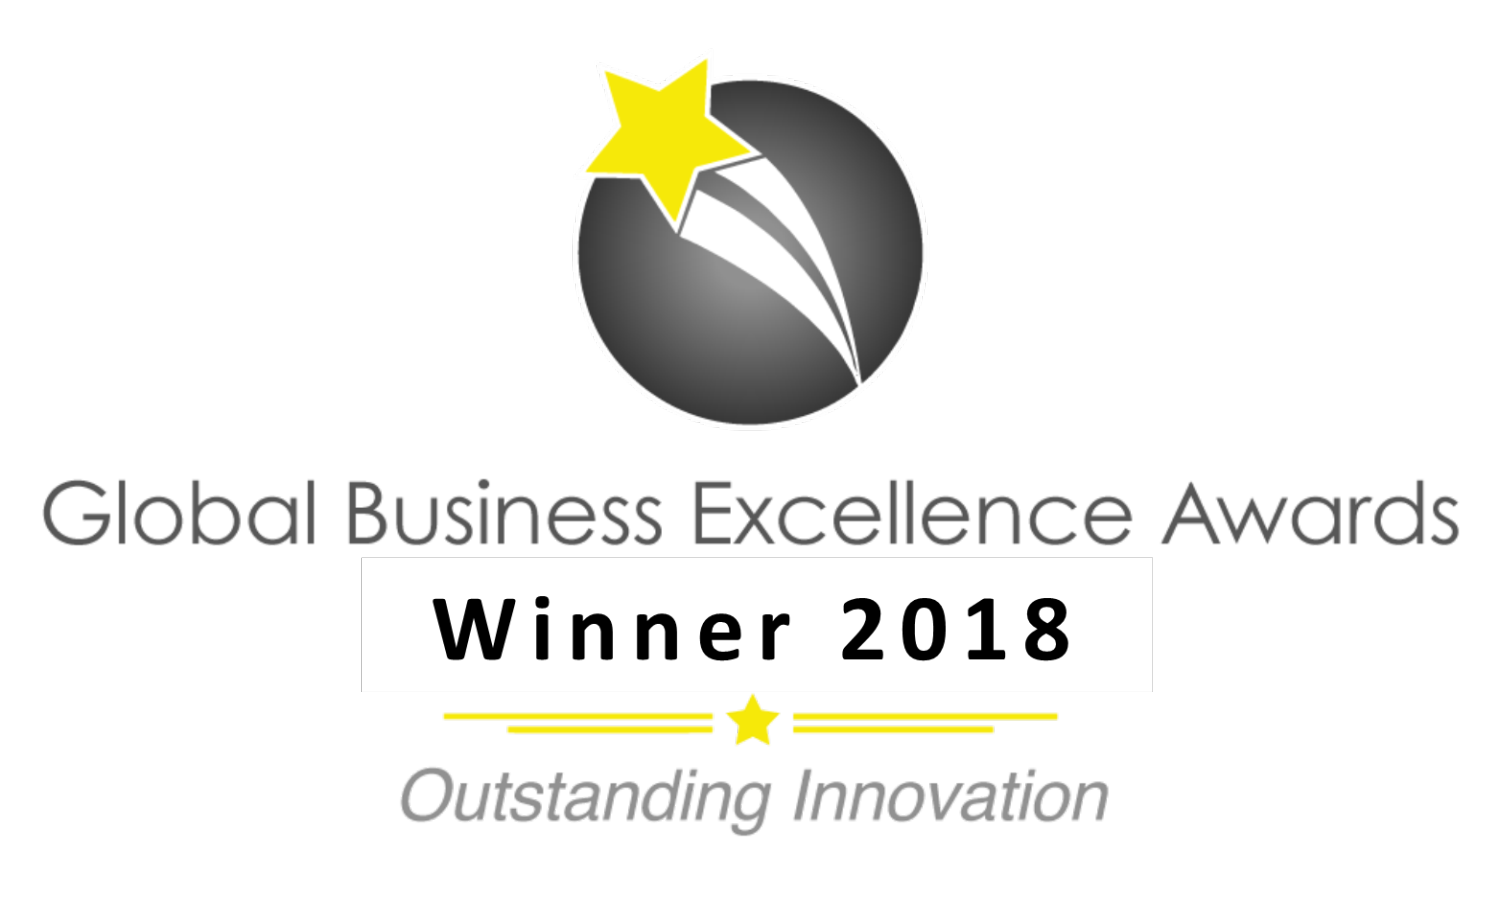 Global Business Excellent Award